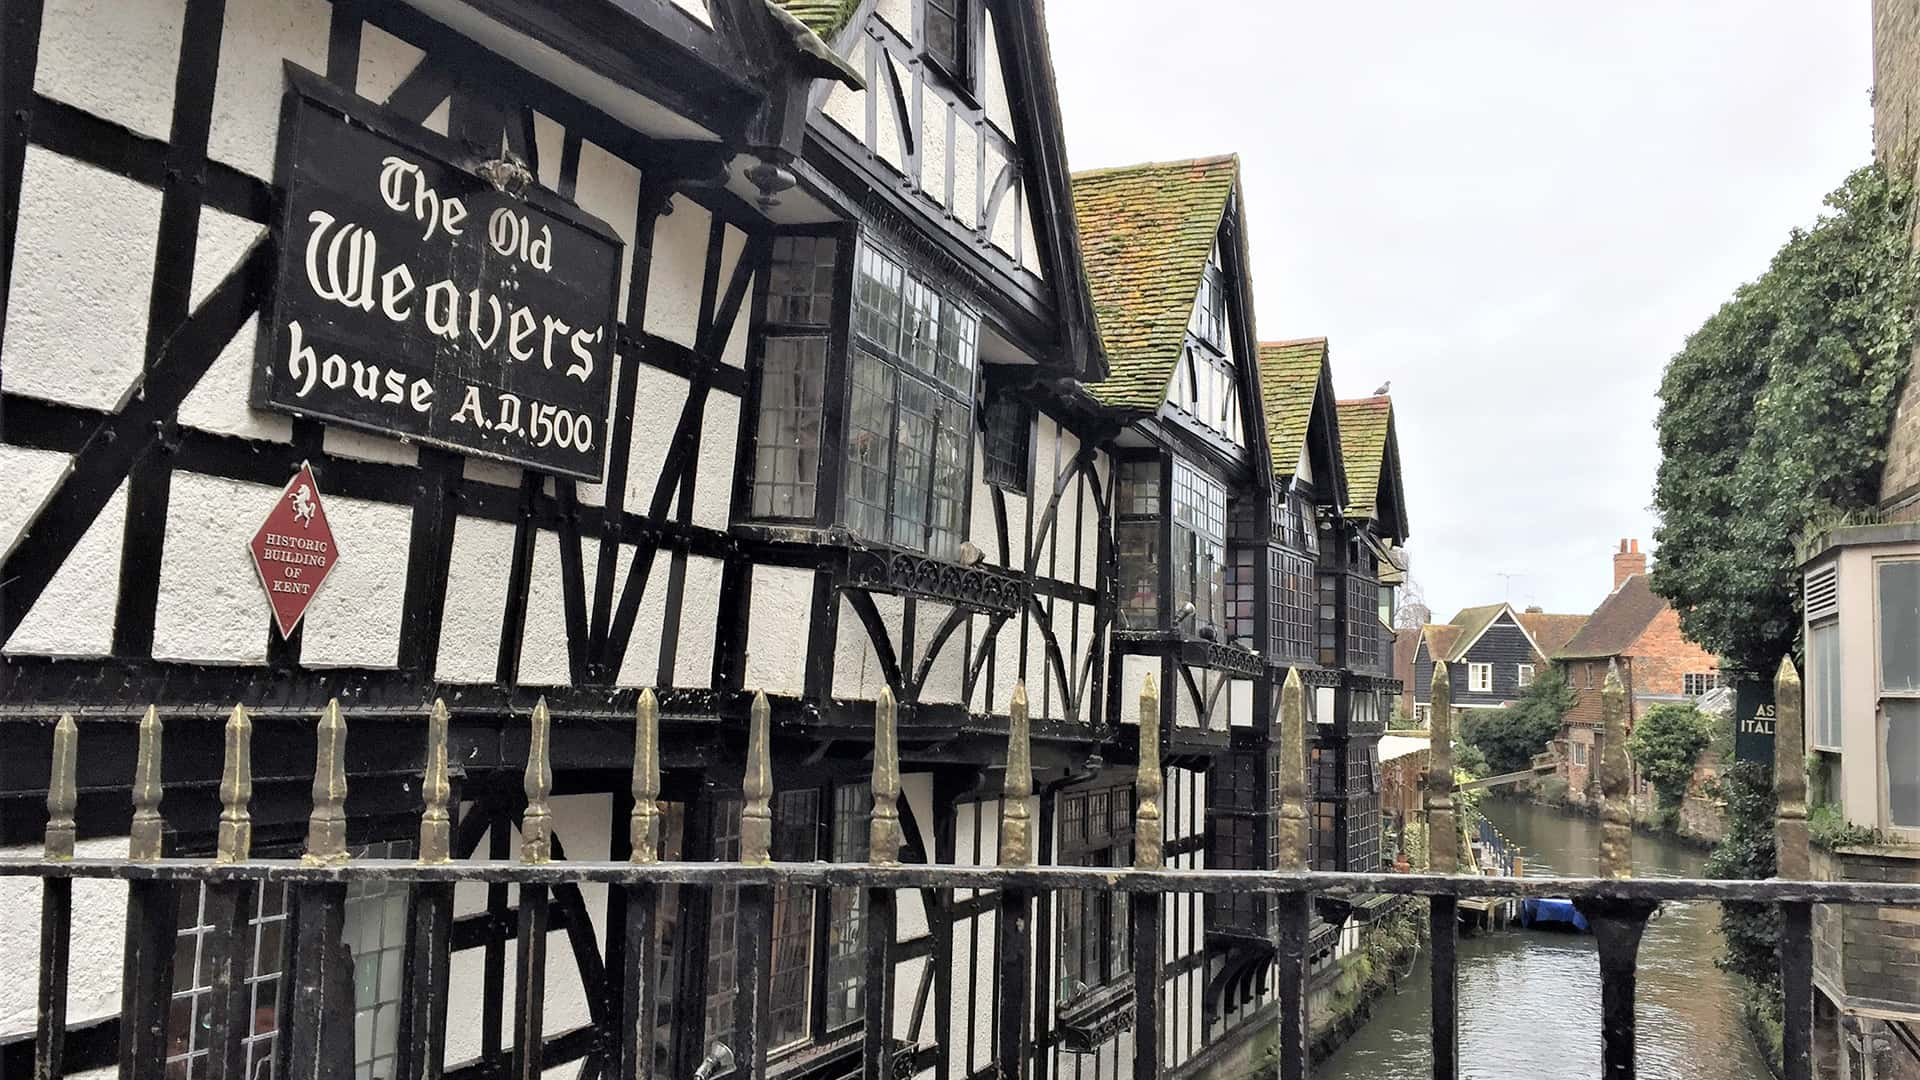 Canterbury Tour – The Old Weaver's House